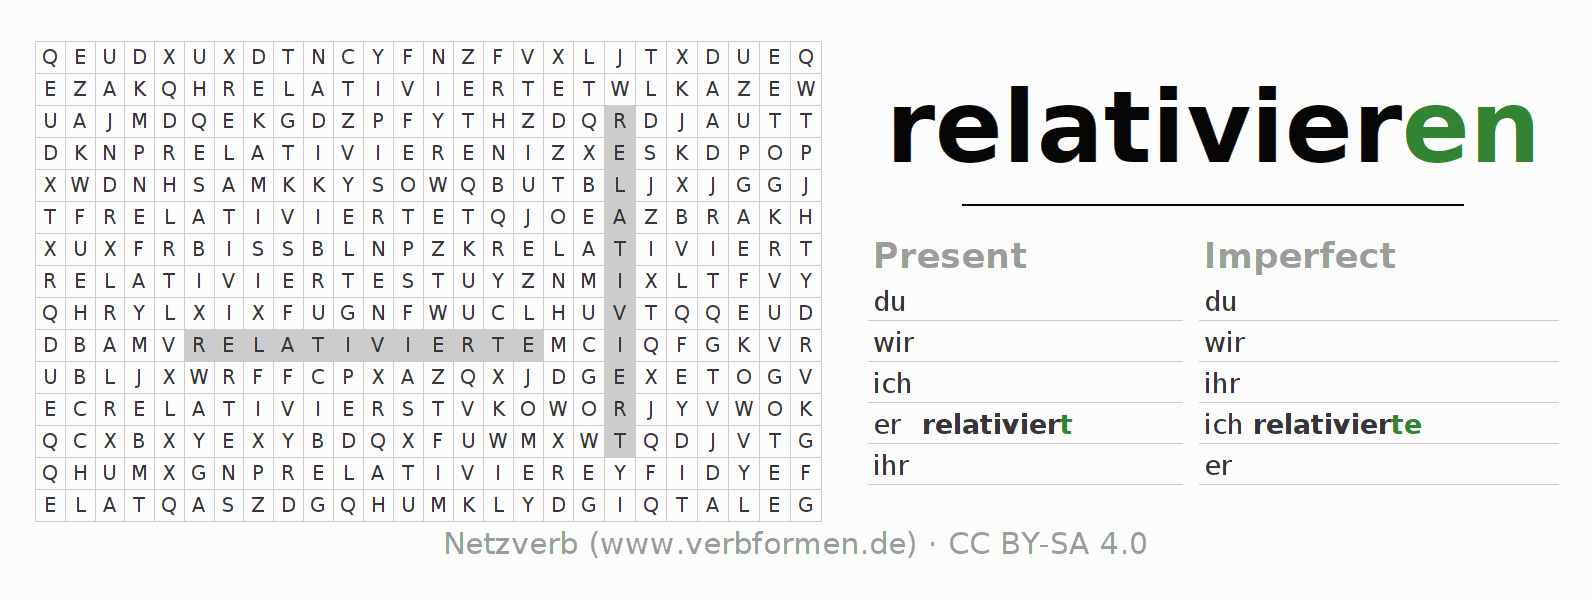 Word search puzzle for the conjugation of the verb relativieren